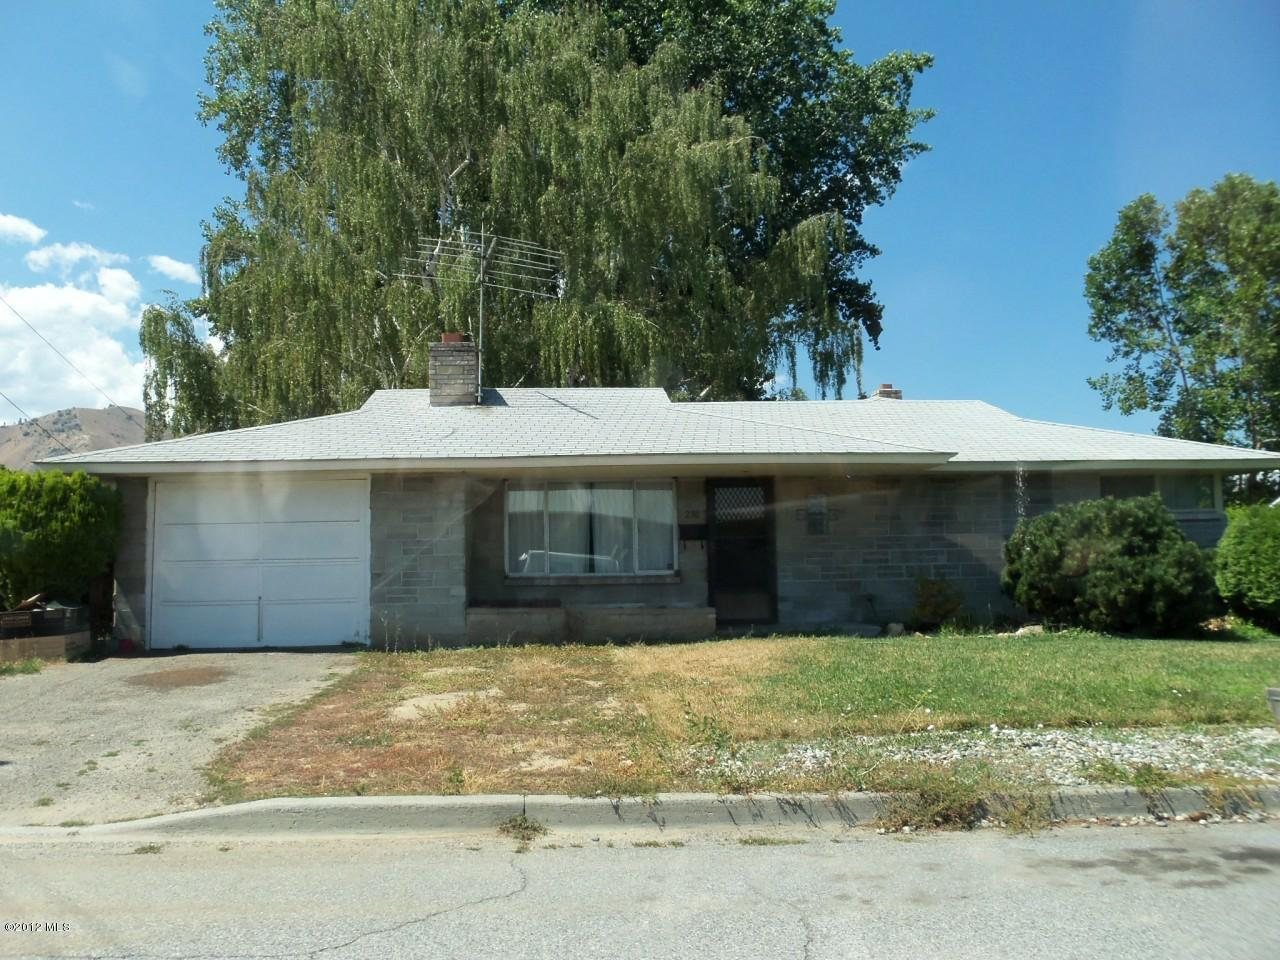 236 Sunset Ave, Wenatchee, WA 98801 (MLS #699047) :: Nick McLean Real Estate Group